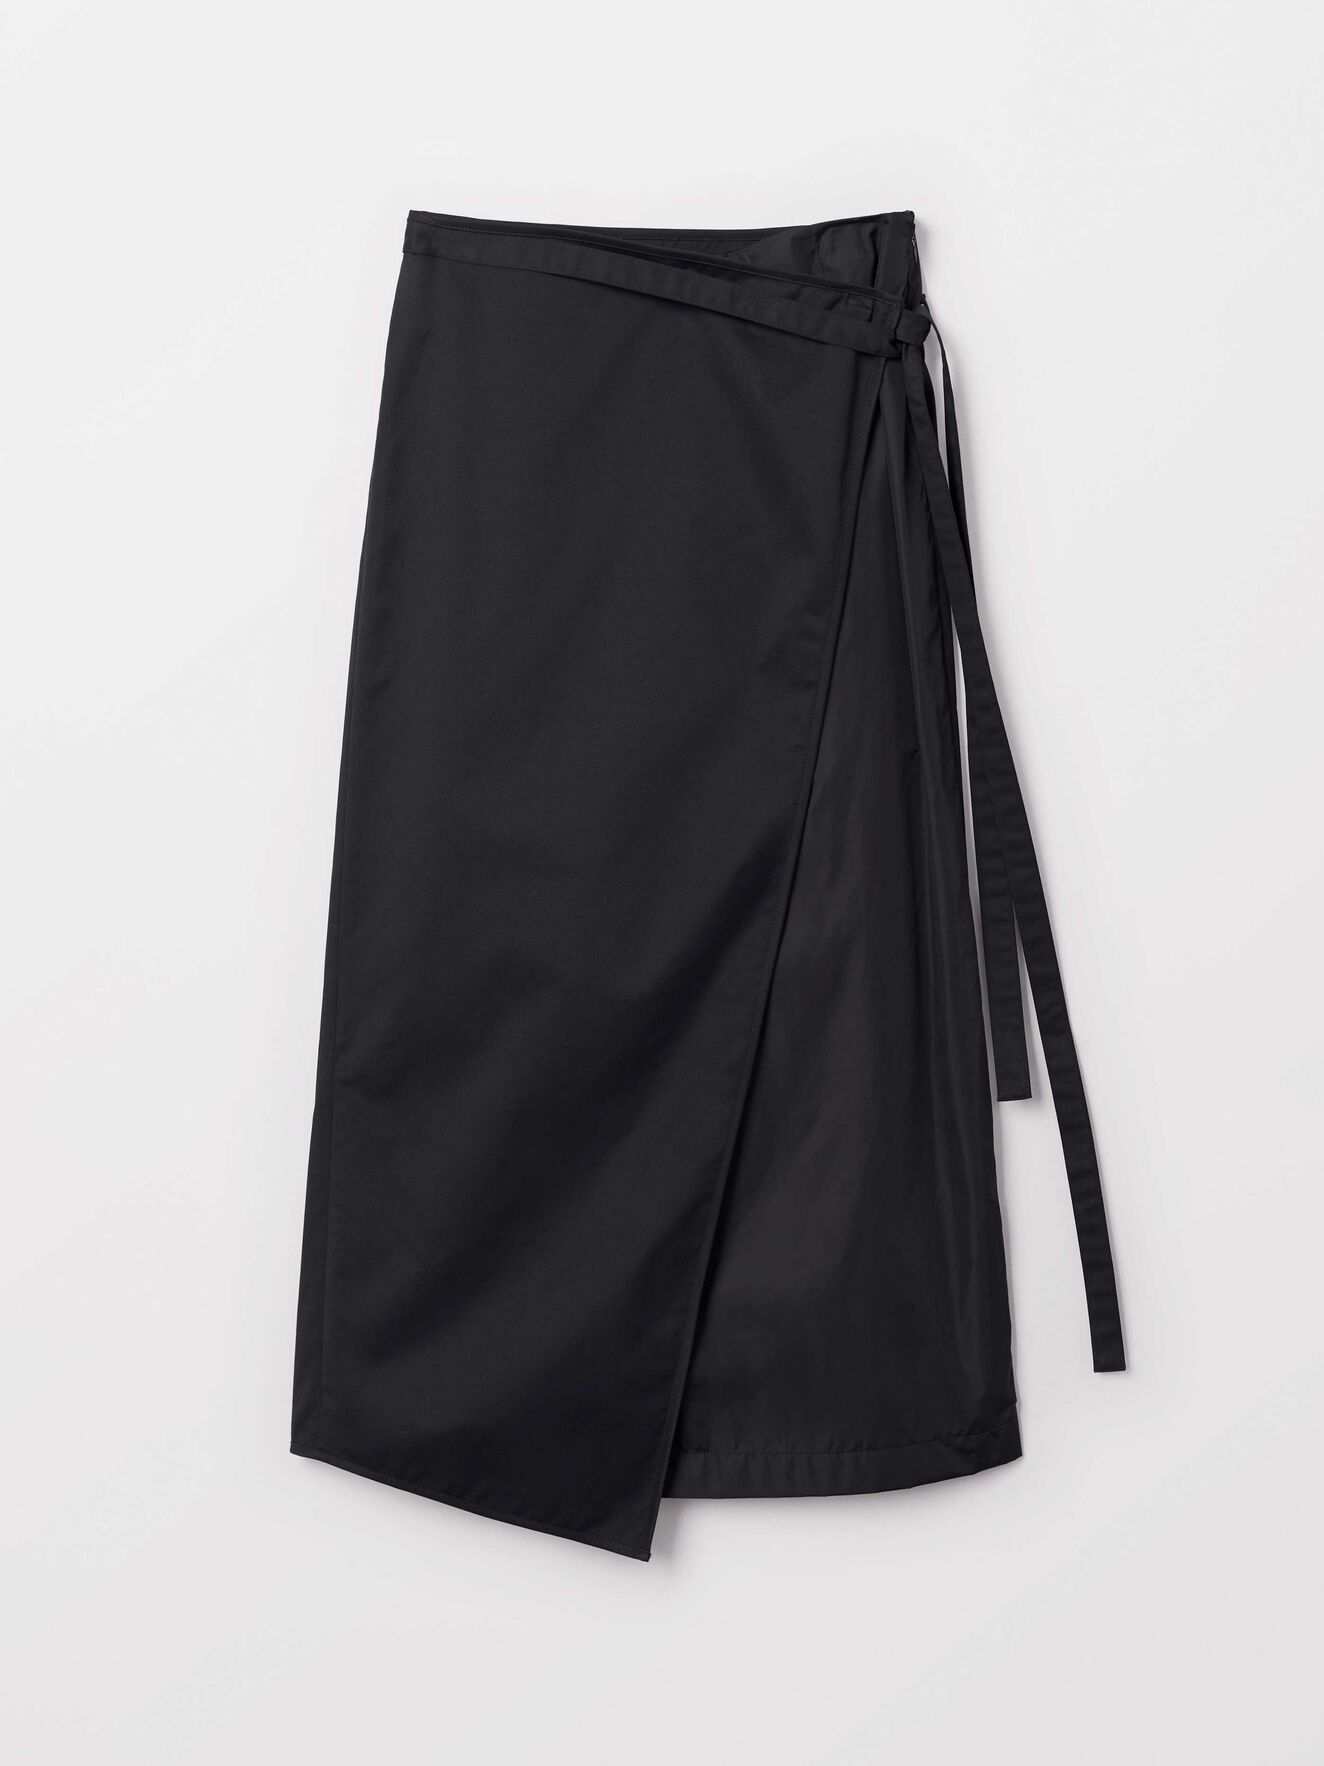 Depth Skirt in Black from Tiger of Sweden